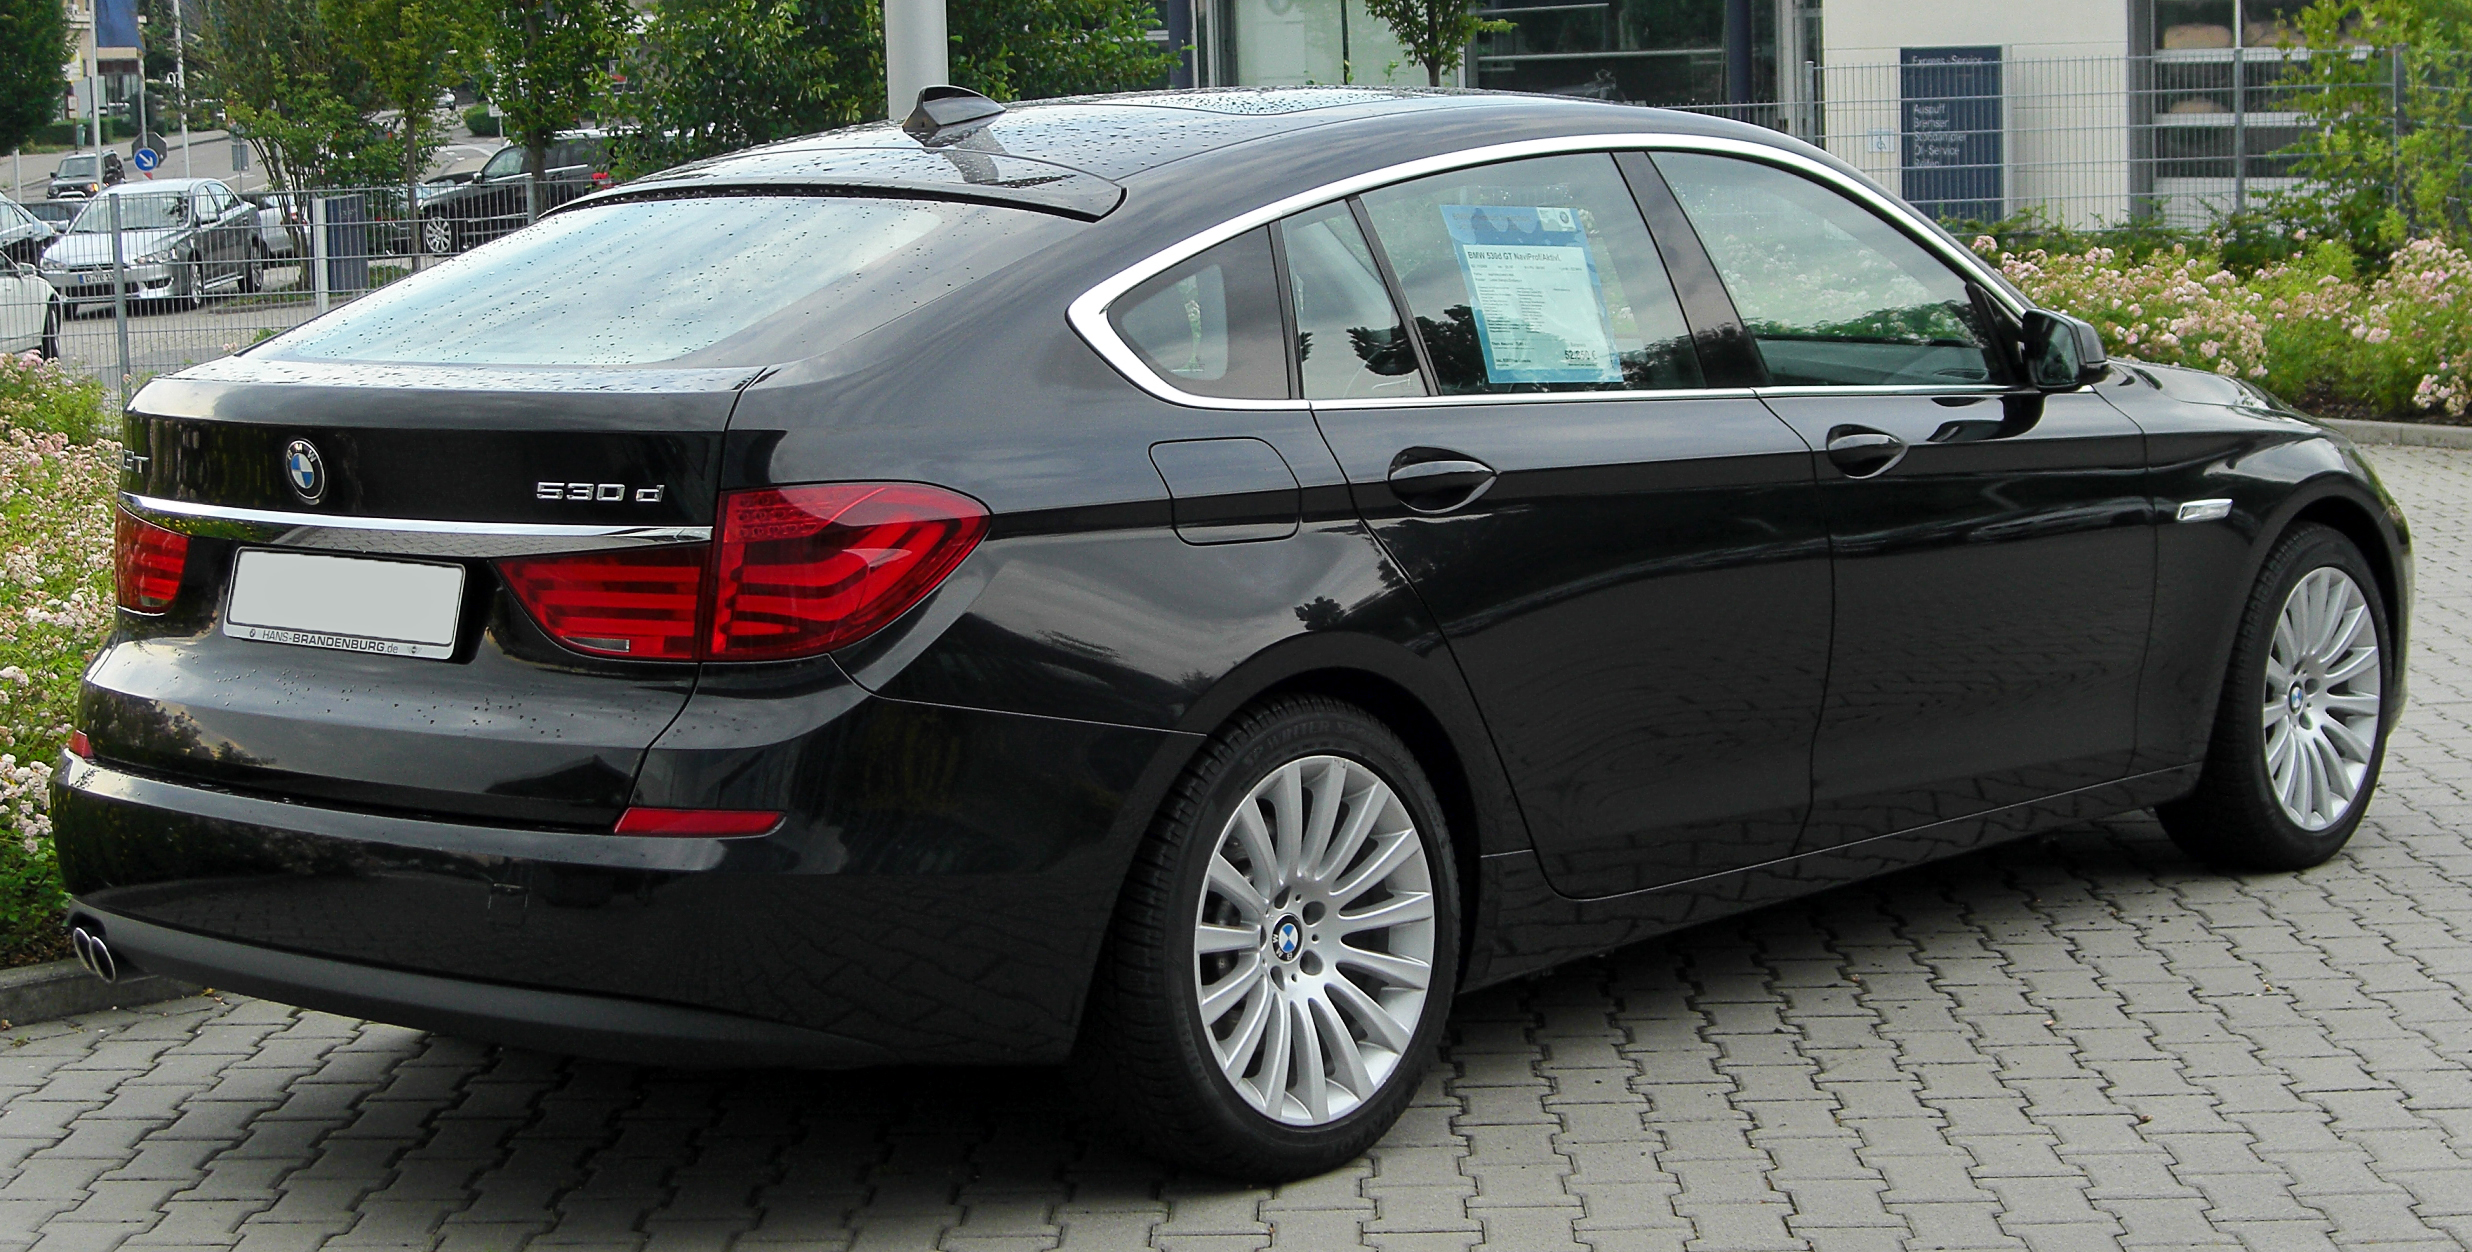 Bmw 3 Series For Sale >> File:BMW 530d GT (F07) rear 20100723.jpg - Wikimedia Commons